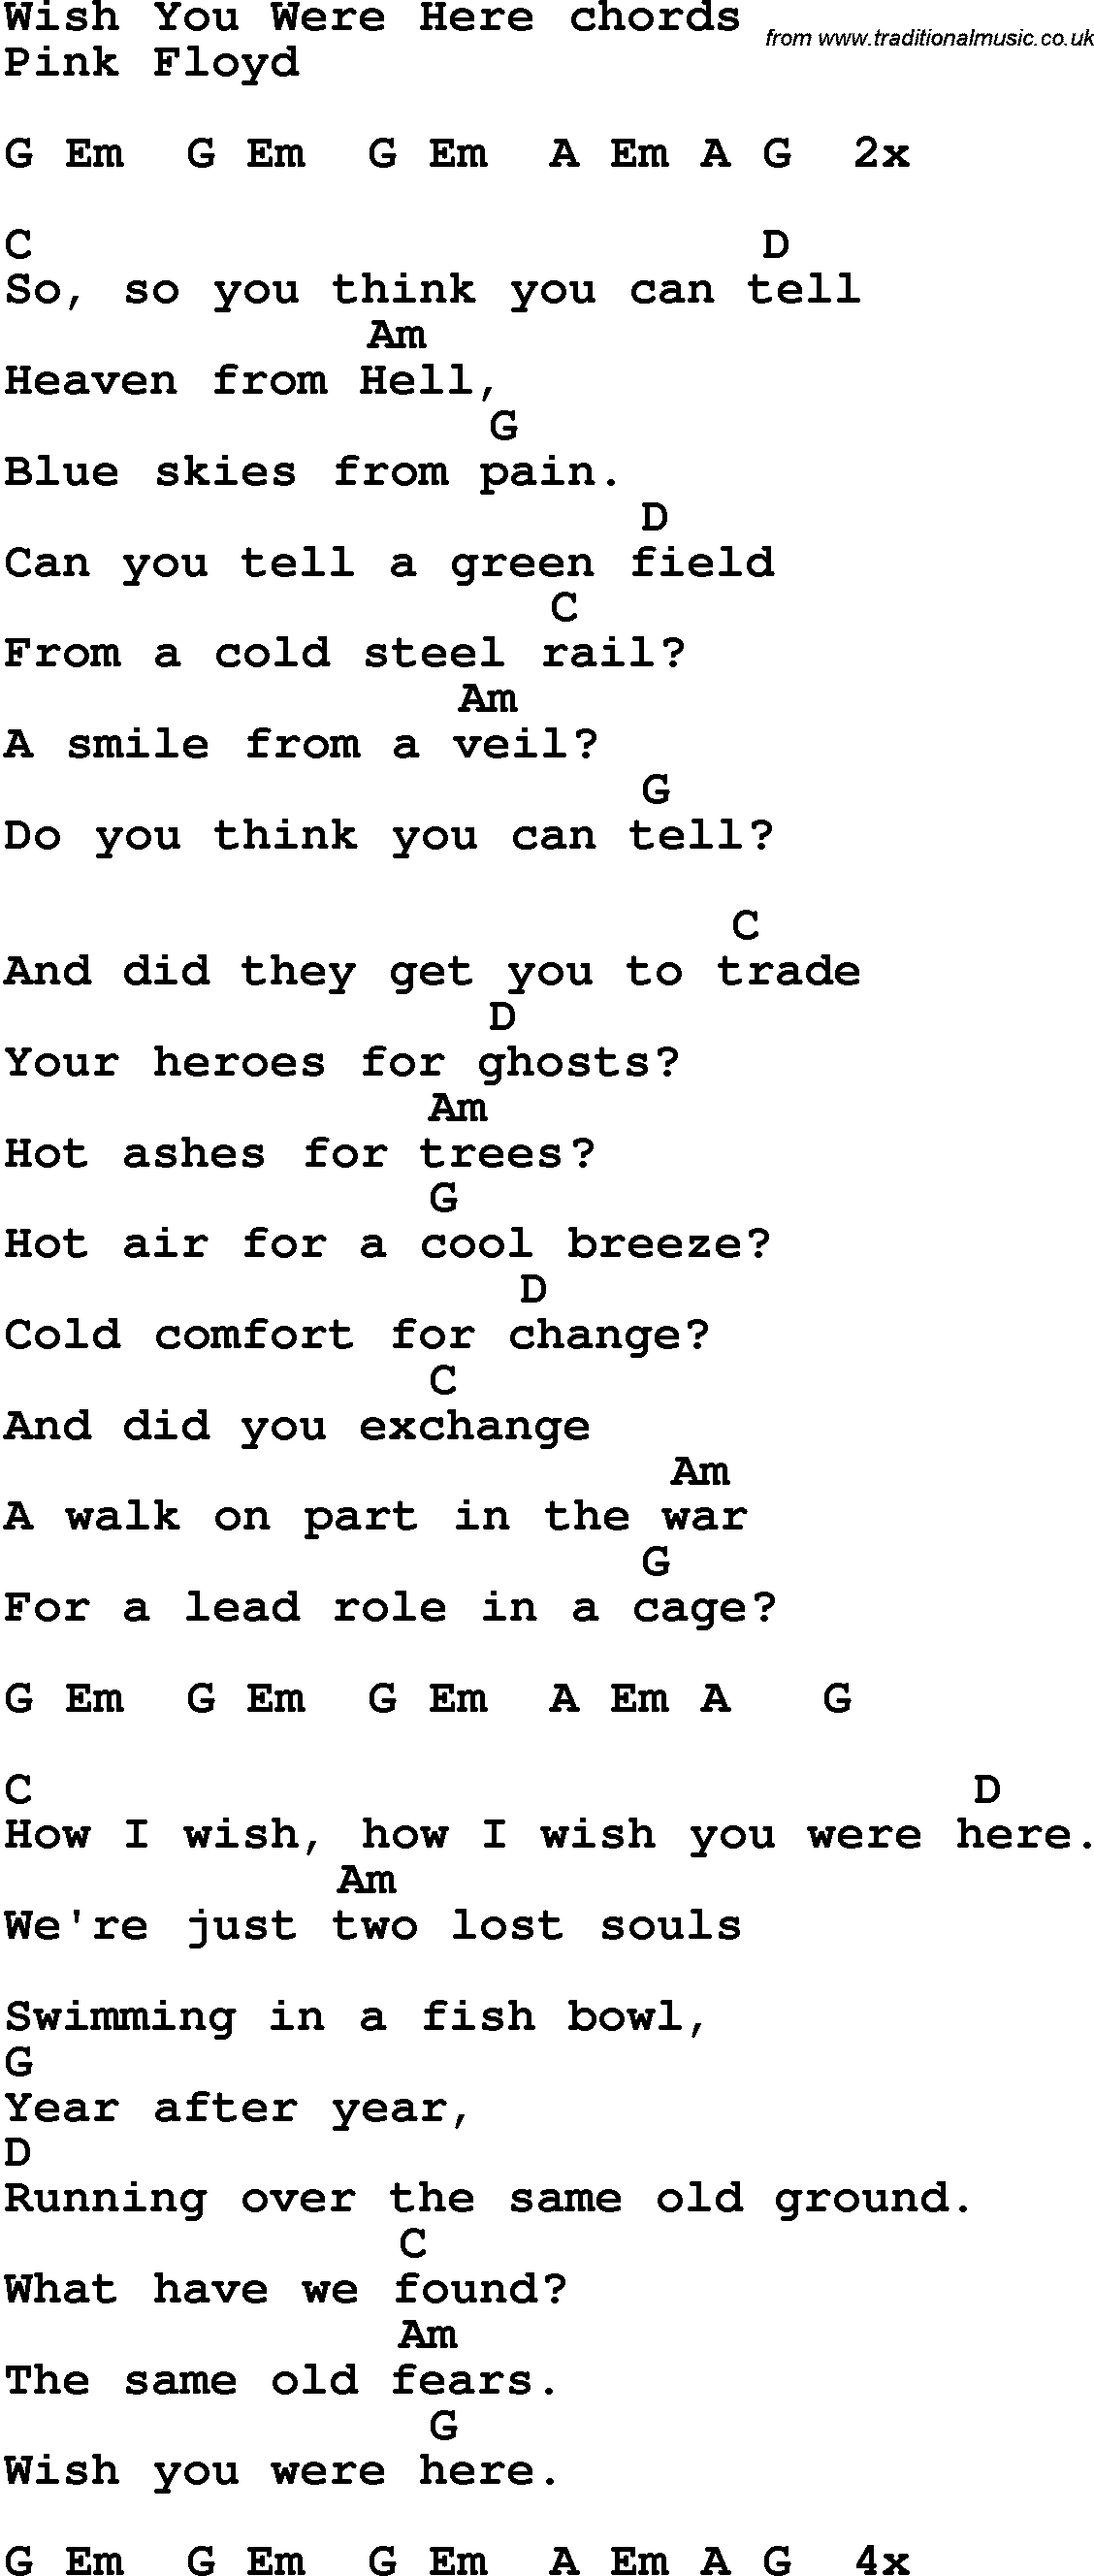 Wish You Were Here Chords Song Lyrics With Guitar Chords For Wish You Were Here Pink Floyd